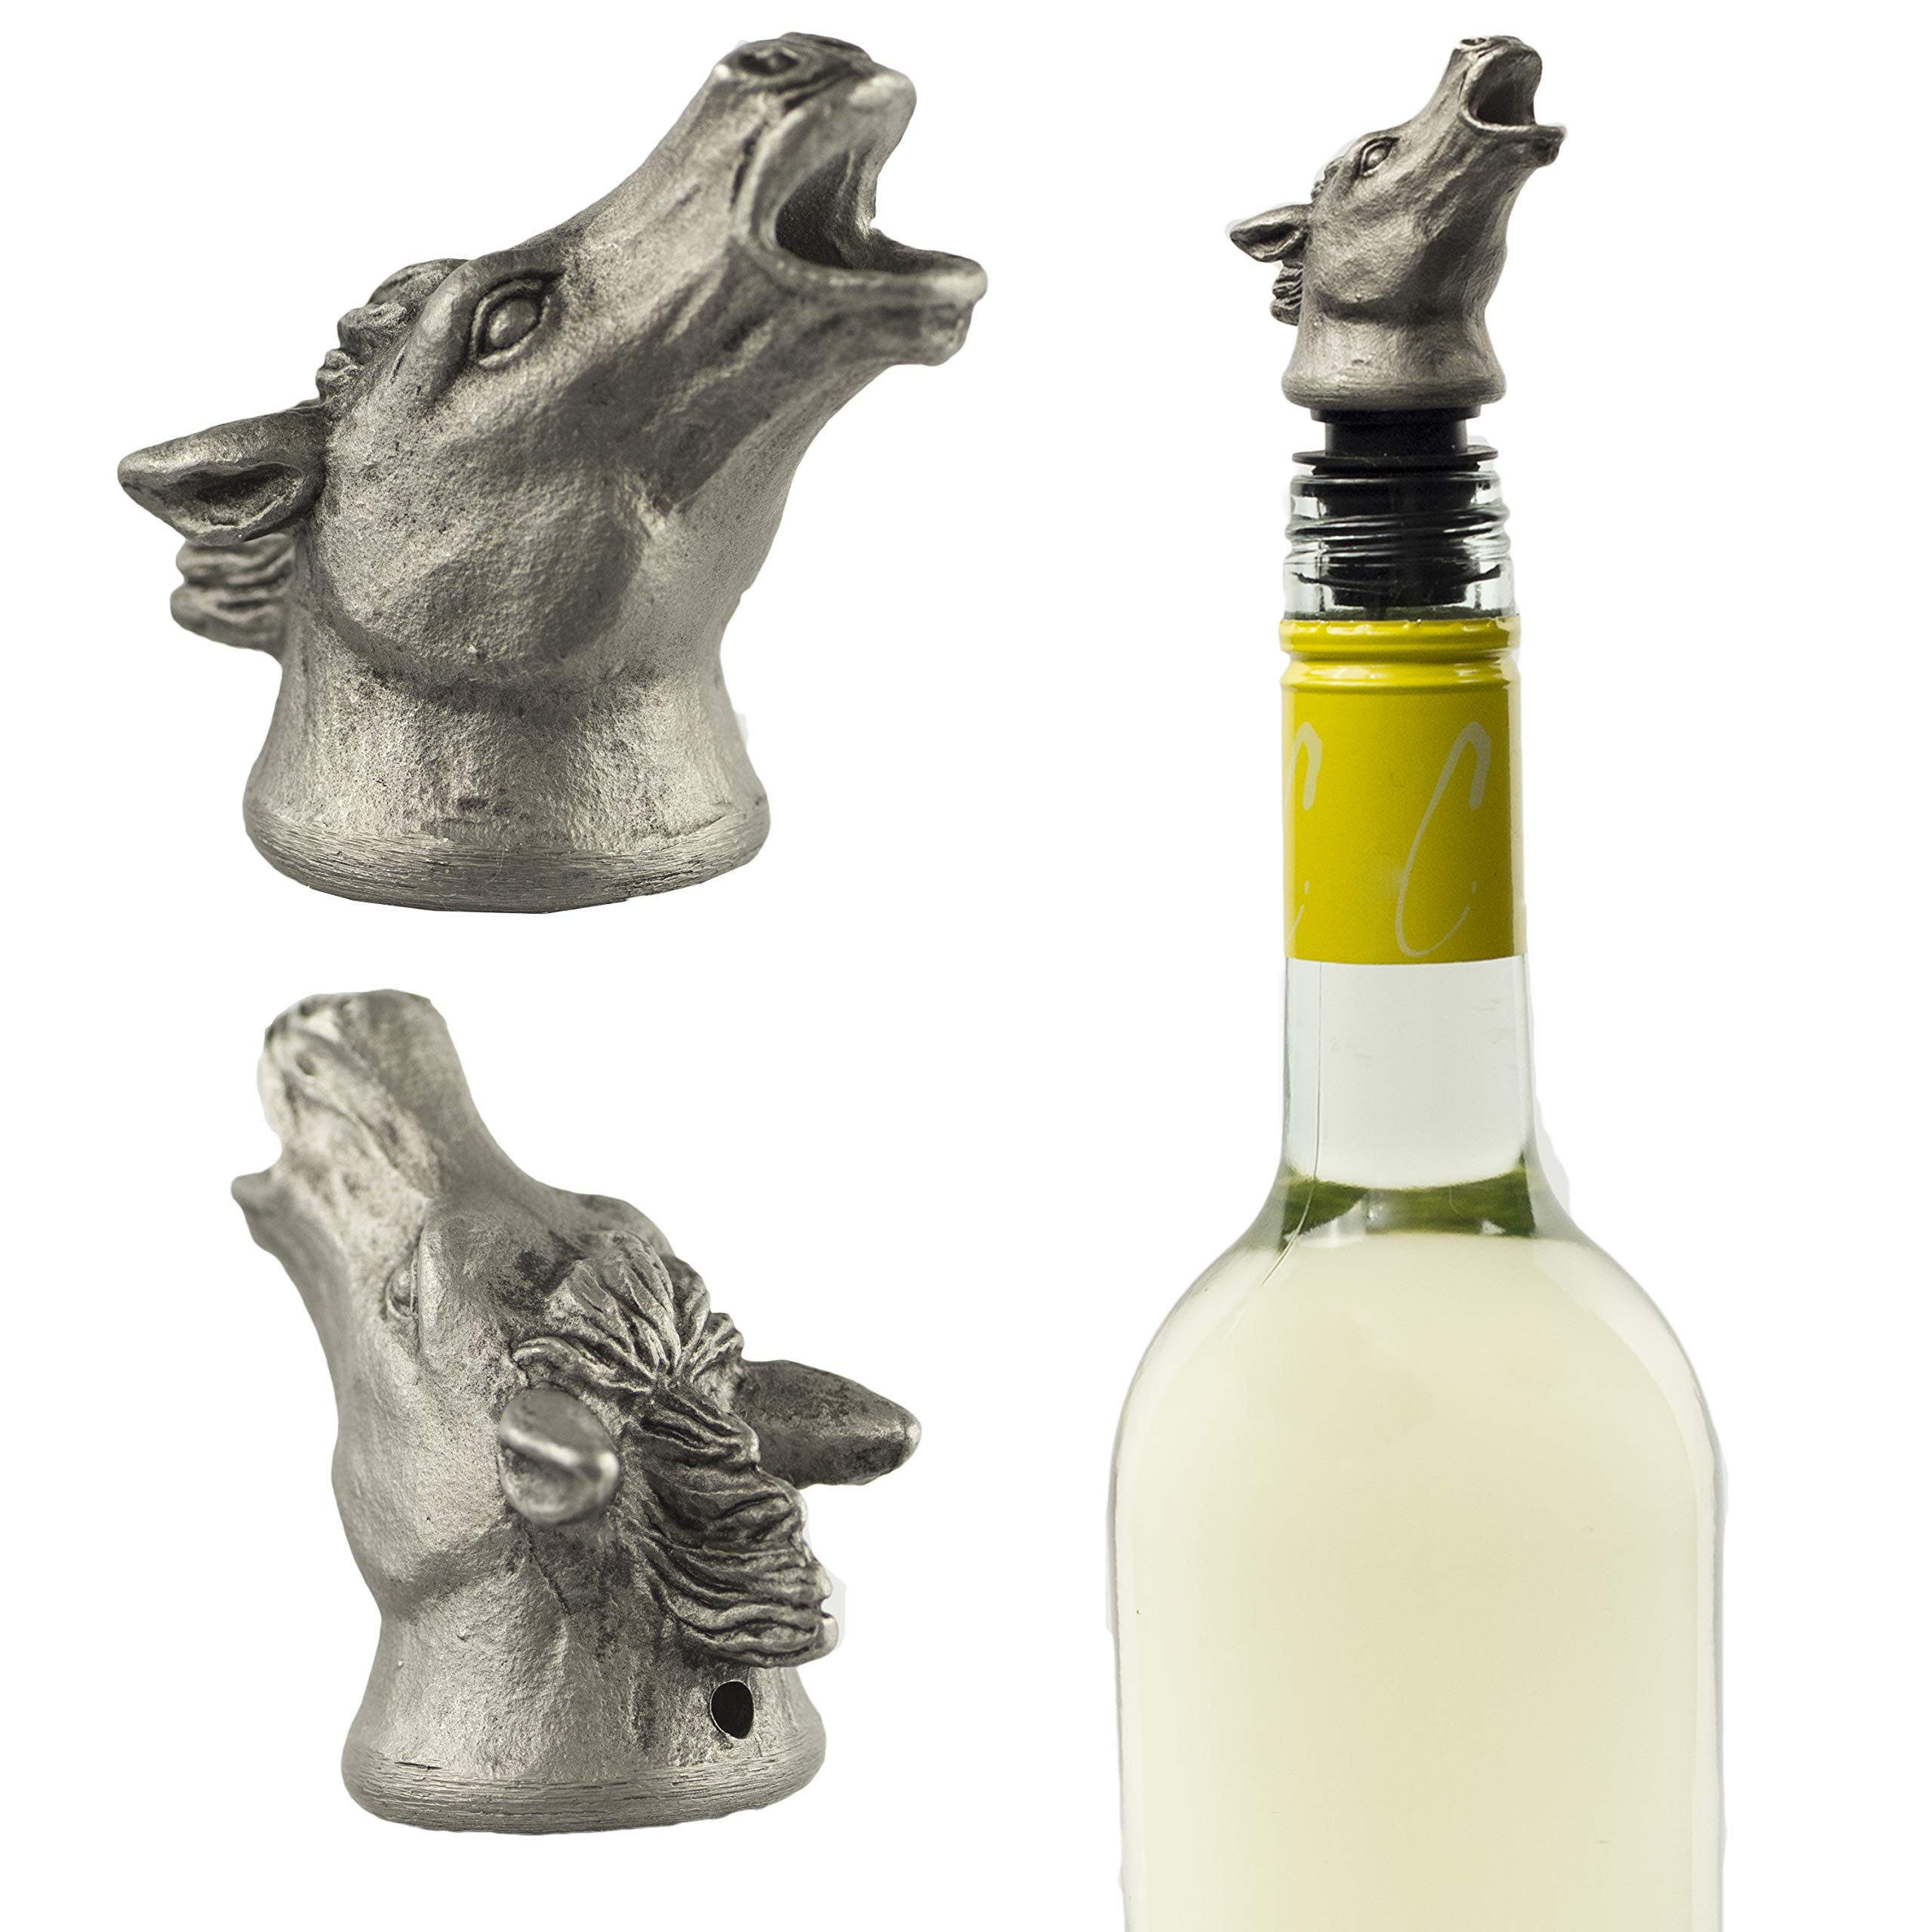 Stainless Steel Horse Wine Pourer, Aerator and Decanter - Perfect Pour Spout for Red, White and Rose Wine, Liquor and Olive Oil! by Choko Entertainment